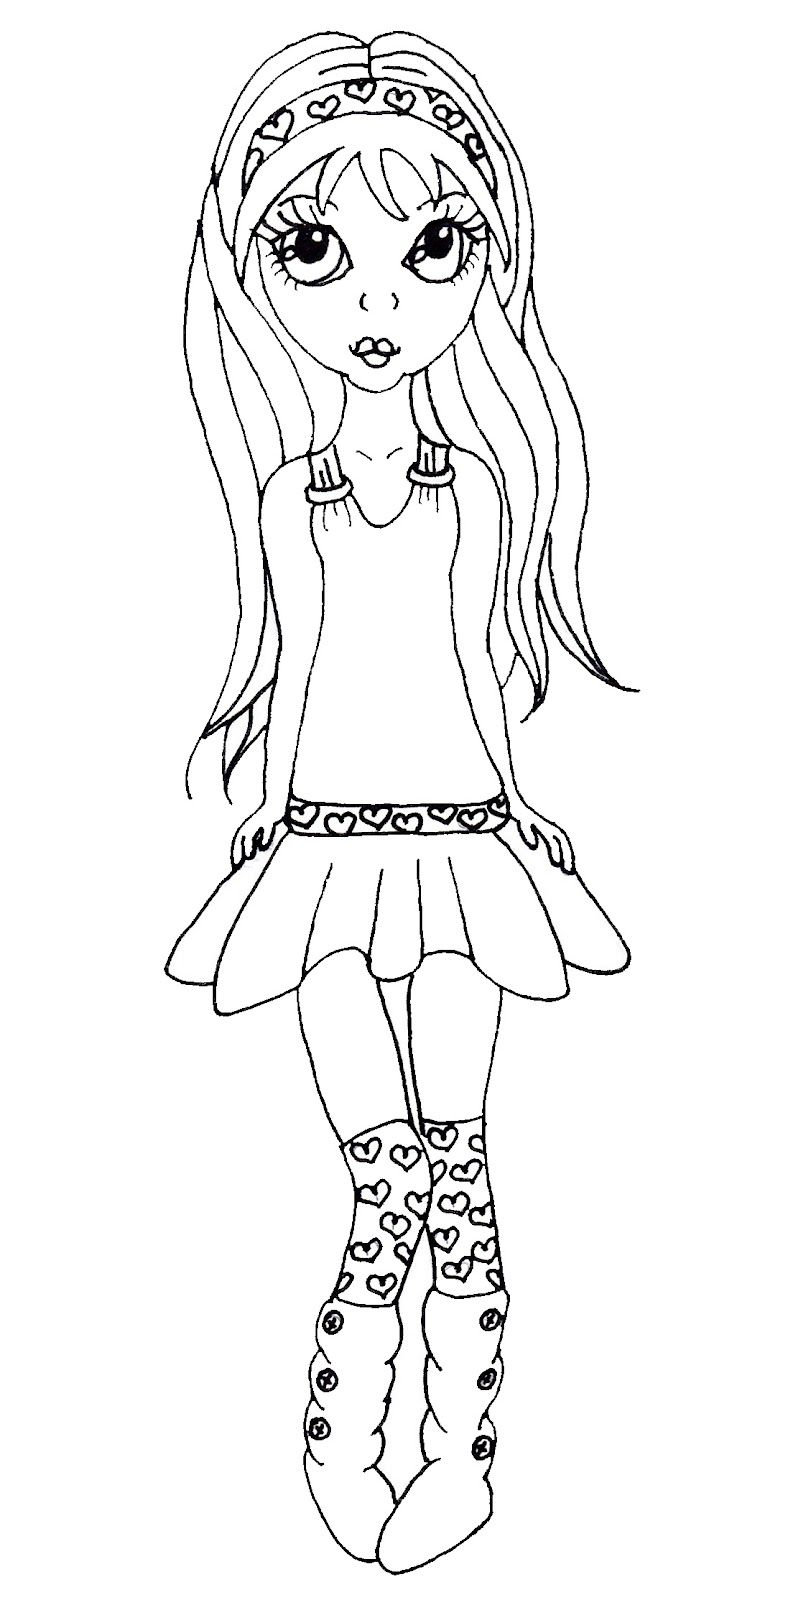 Coloriage De Fille A La Mode.Coloriage Fille Mode Coloriage 1970 Coloriage Ado Coloriage